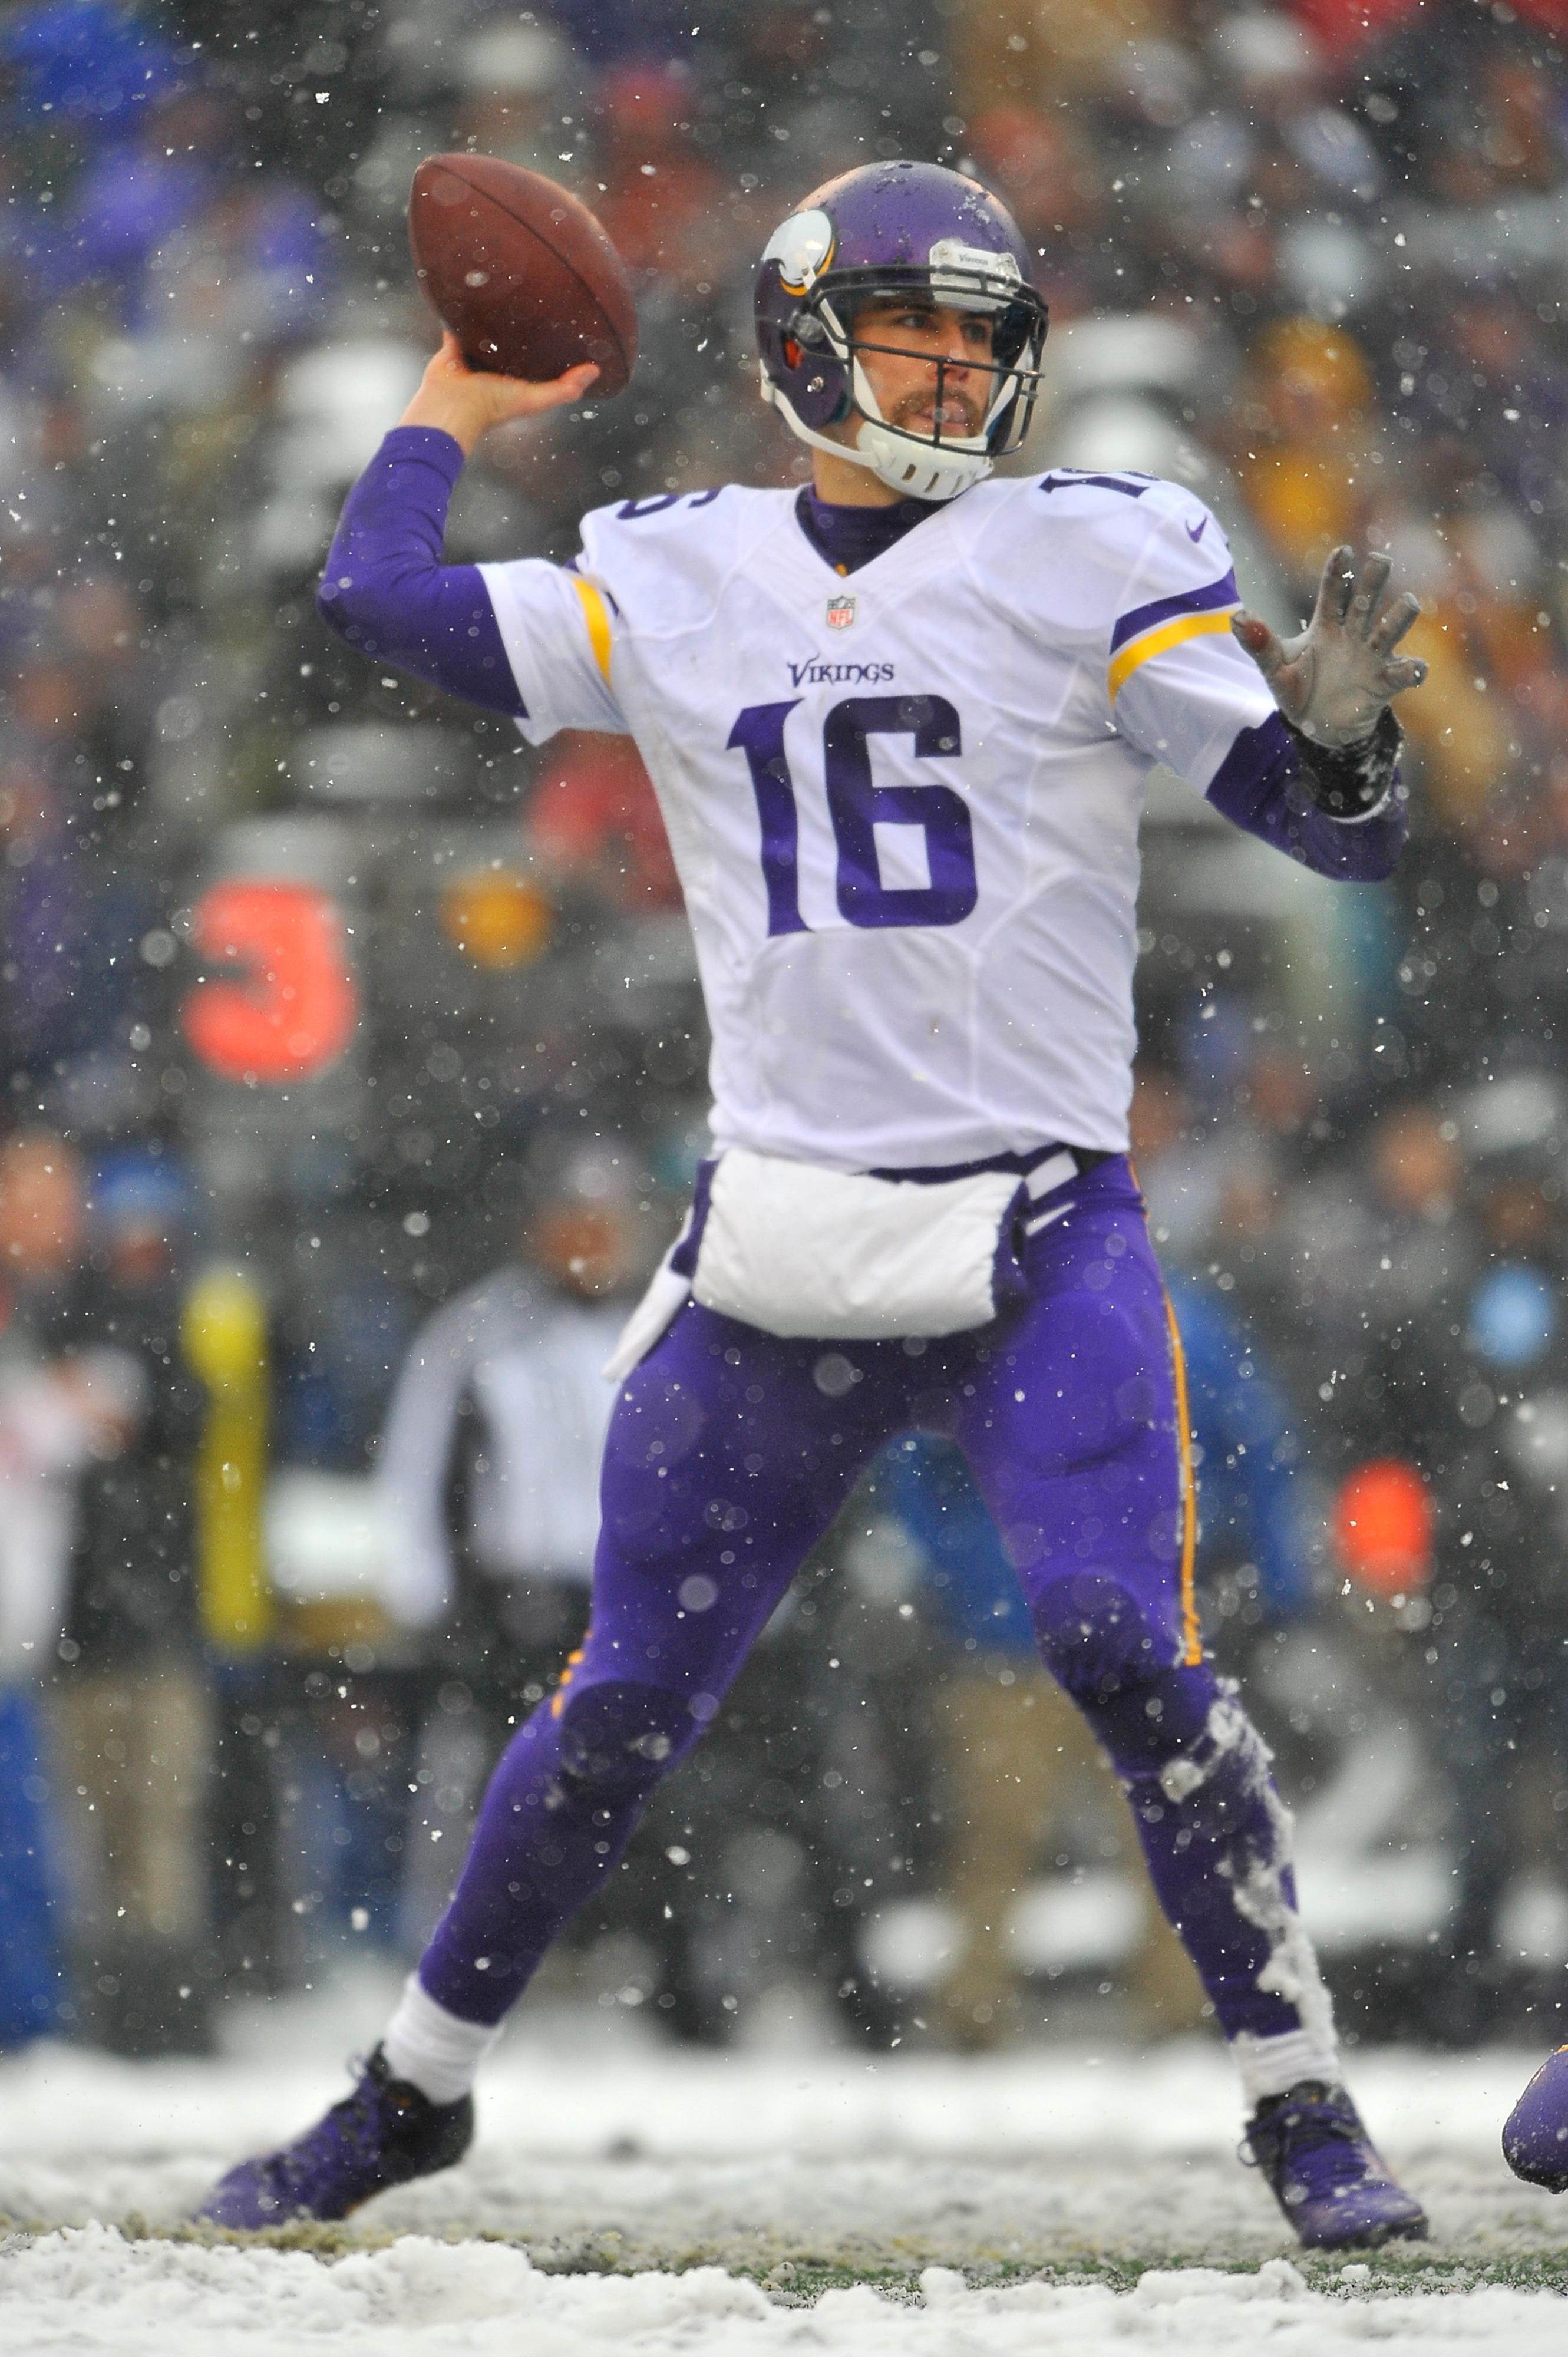 We'll be missing the snow (and the glorious 'stache that Cassel shaved off) in Sunday's game.